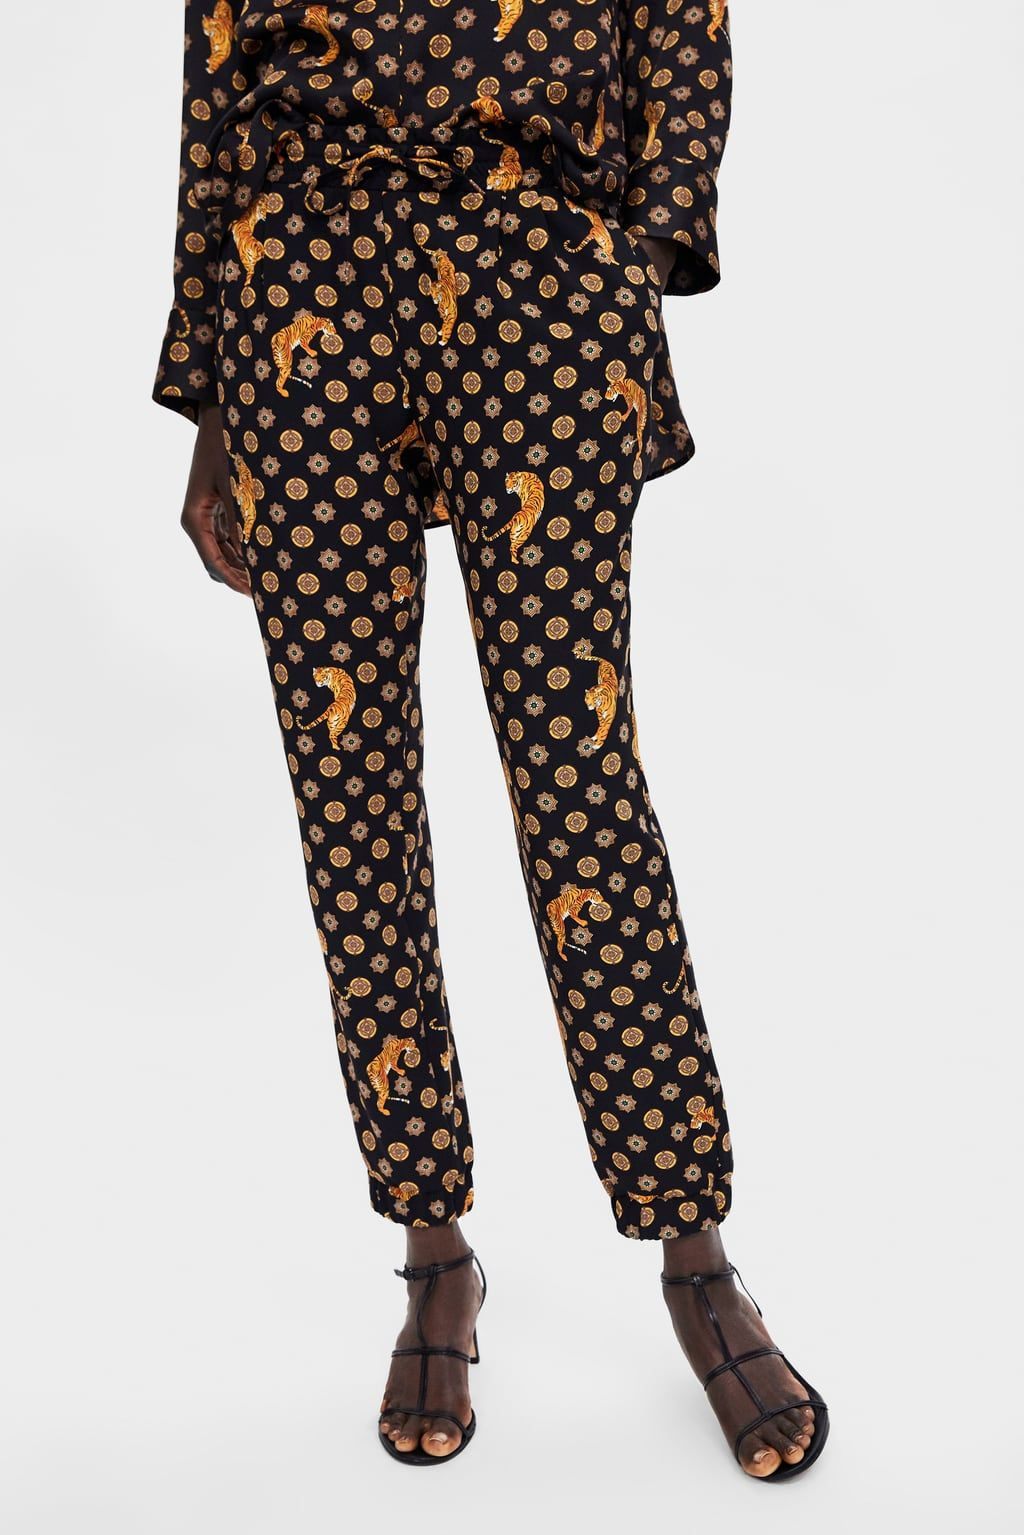 3668c02213eb4a Image 2 of TIGER PRINTED PANTS from Zara | things i want but am too ...